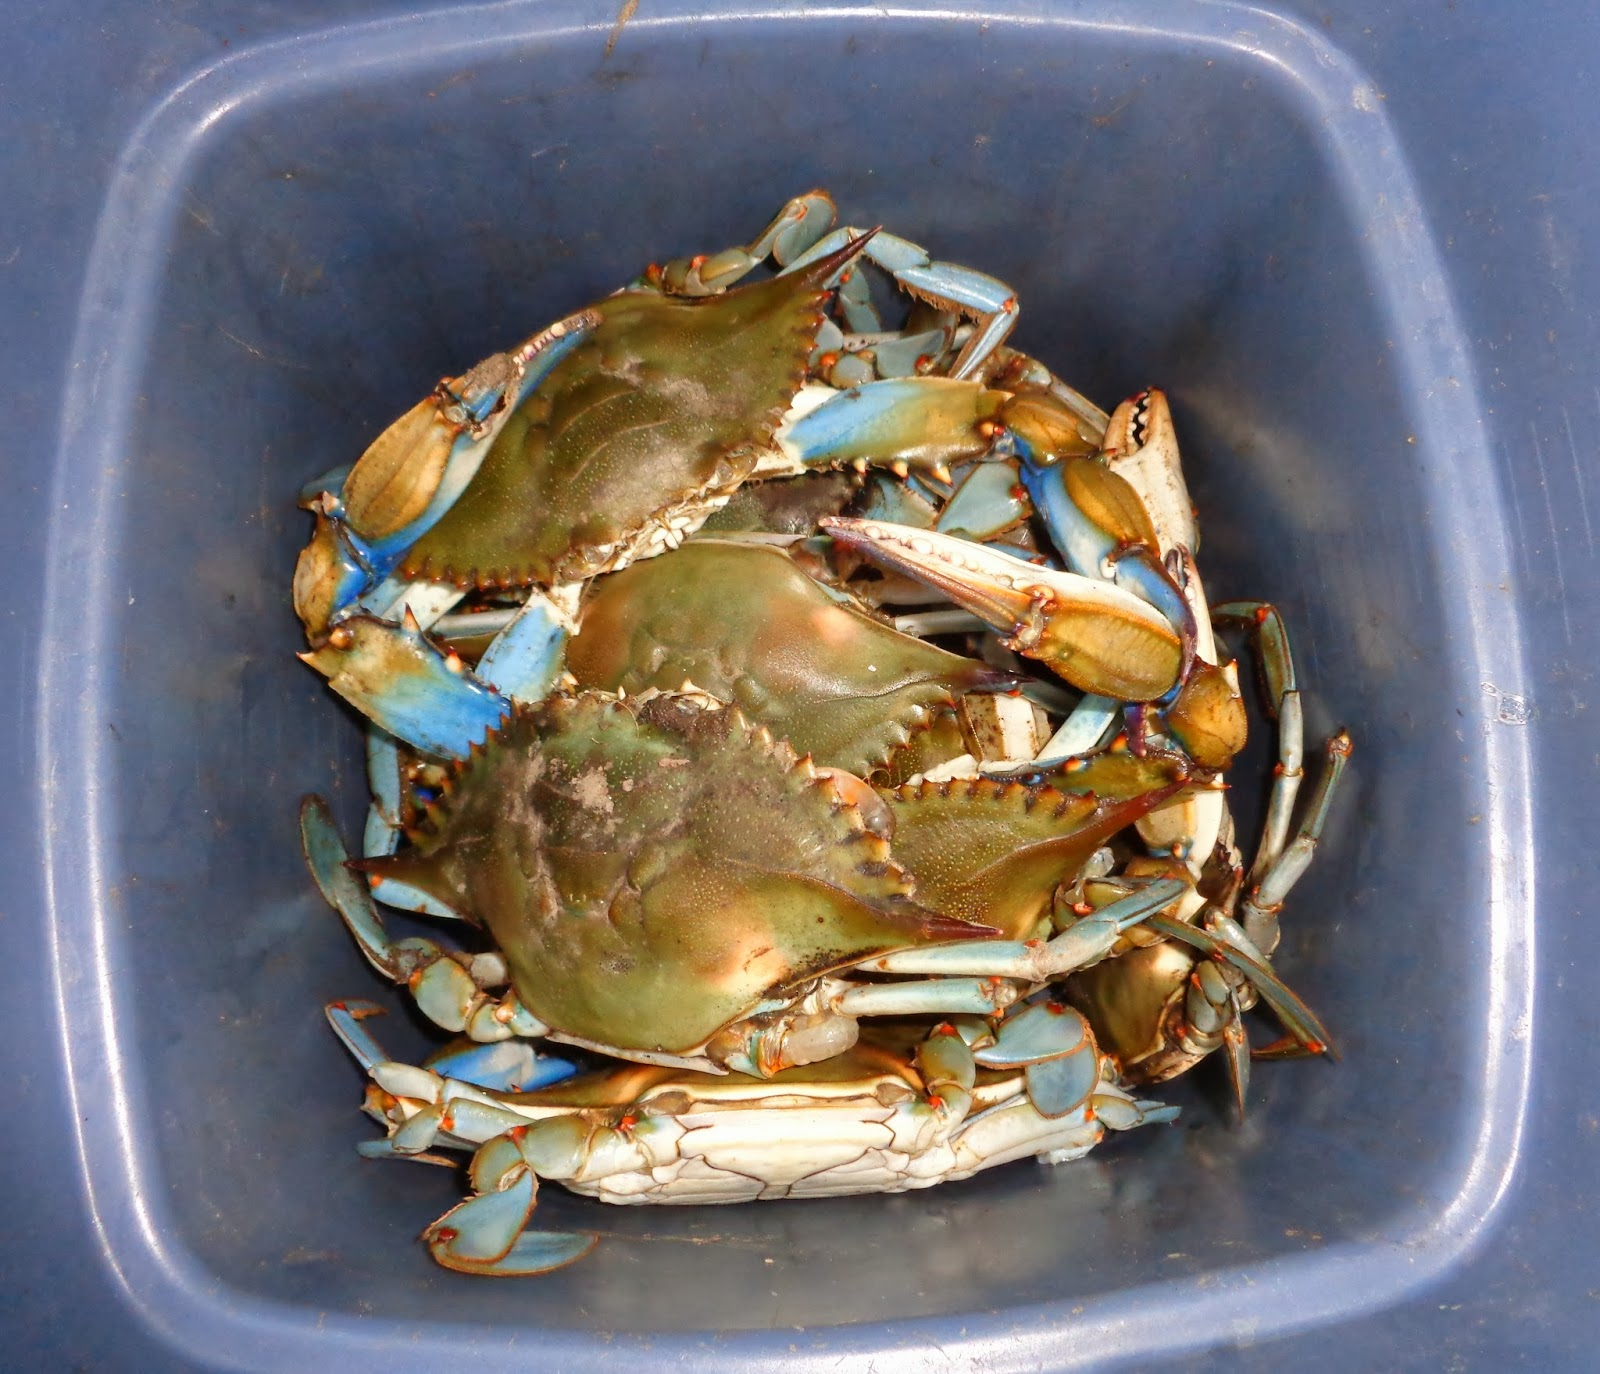 chesapeake bay s blue crab An introduction to the blue crab blue crabs in the chesapeake classroom resource produced at the virginia institute of marine science by lisa lawrence, vicki clark.